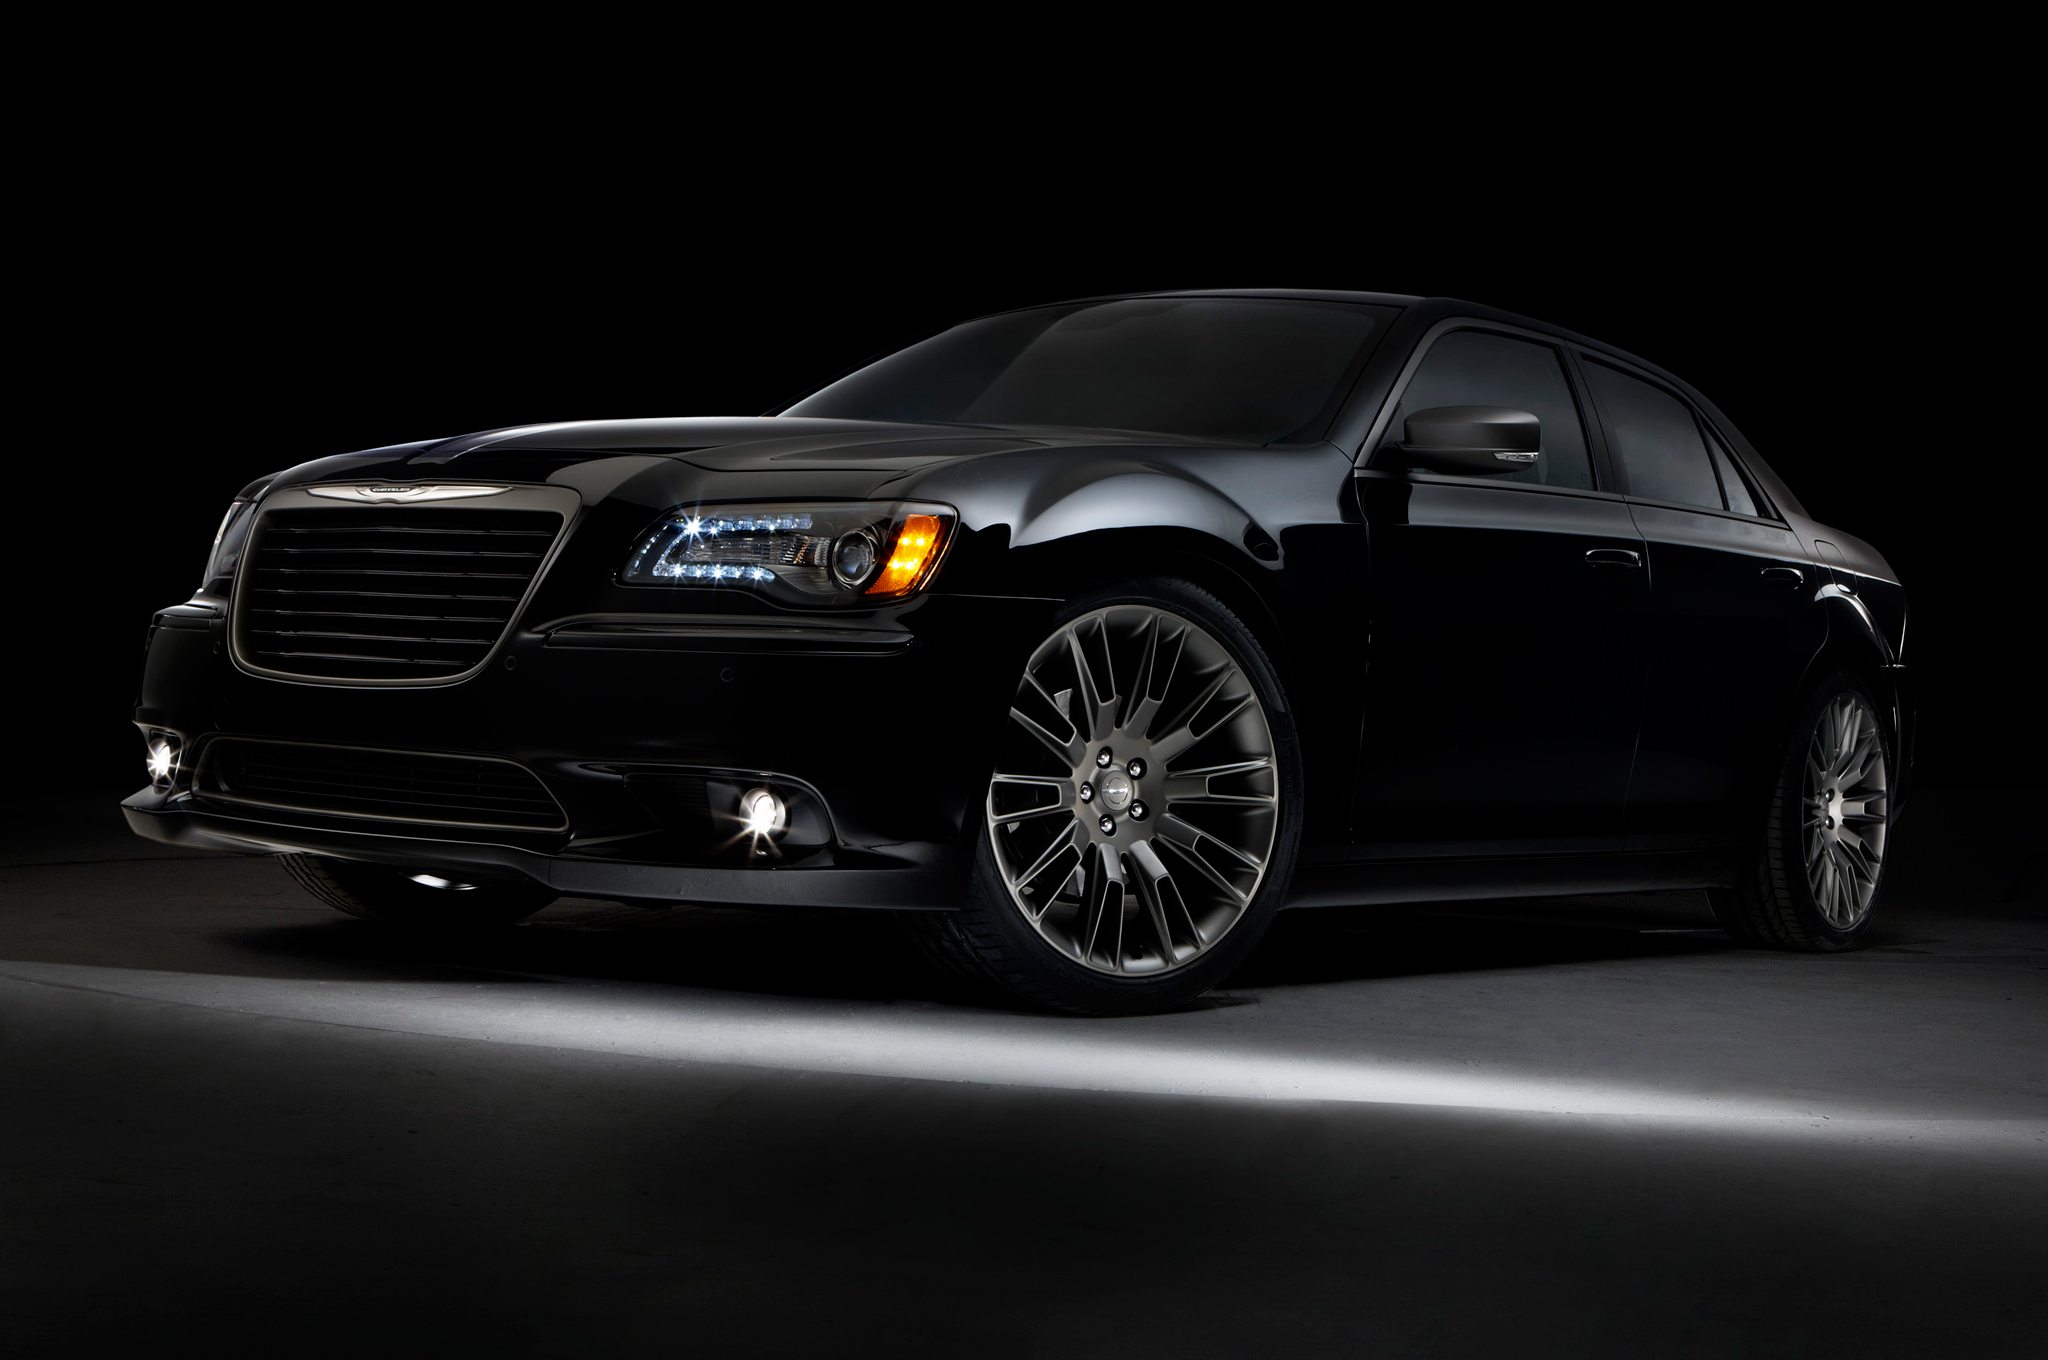 2014 Chrysler 300c John Varvatos Limited Edition Returns With Awd